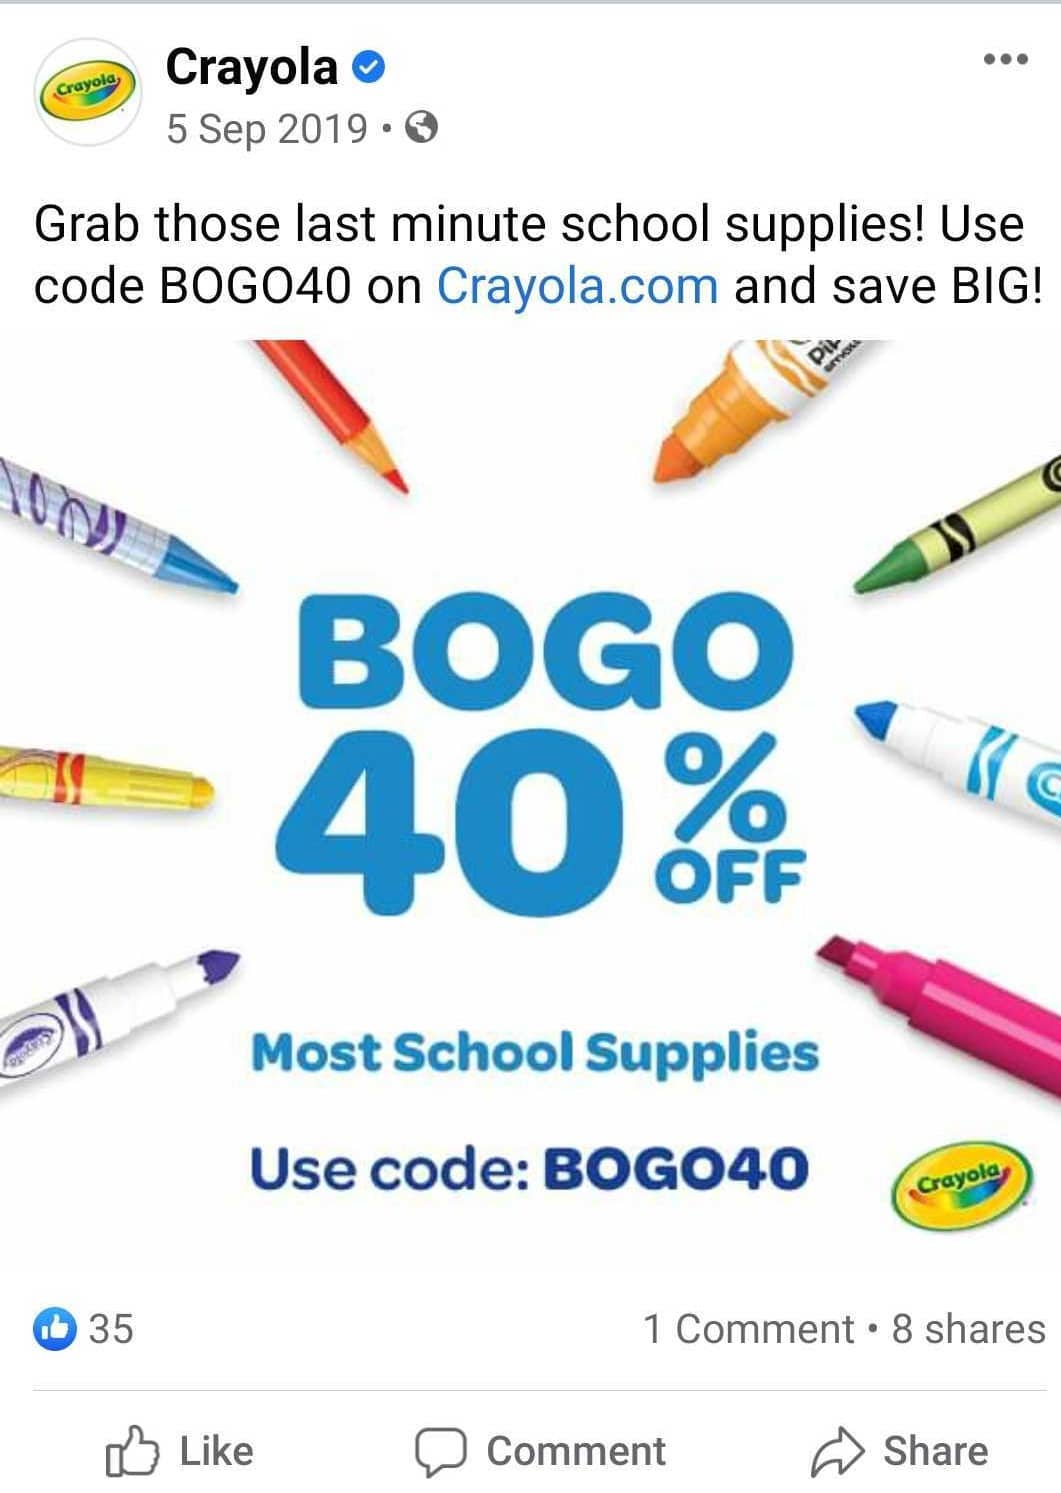 Post for back to school with giveaways